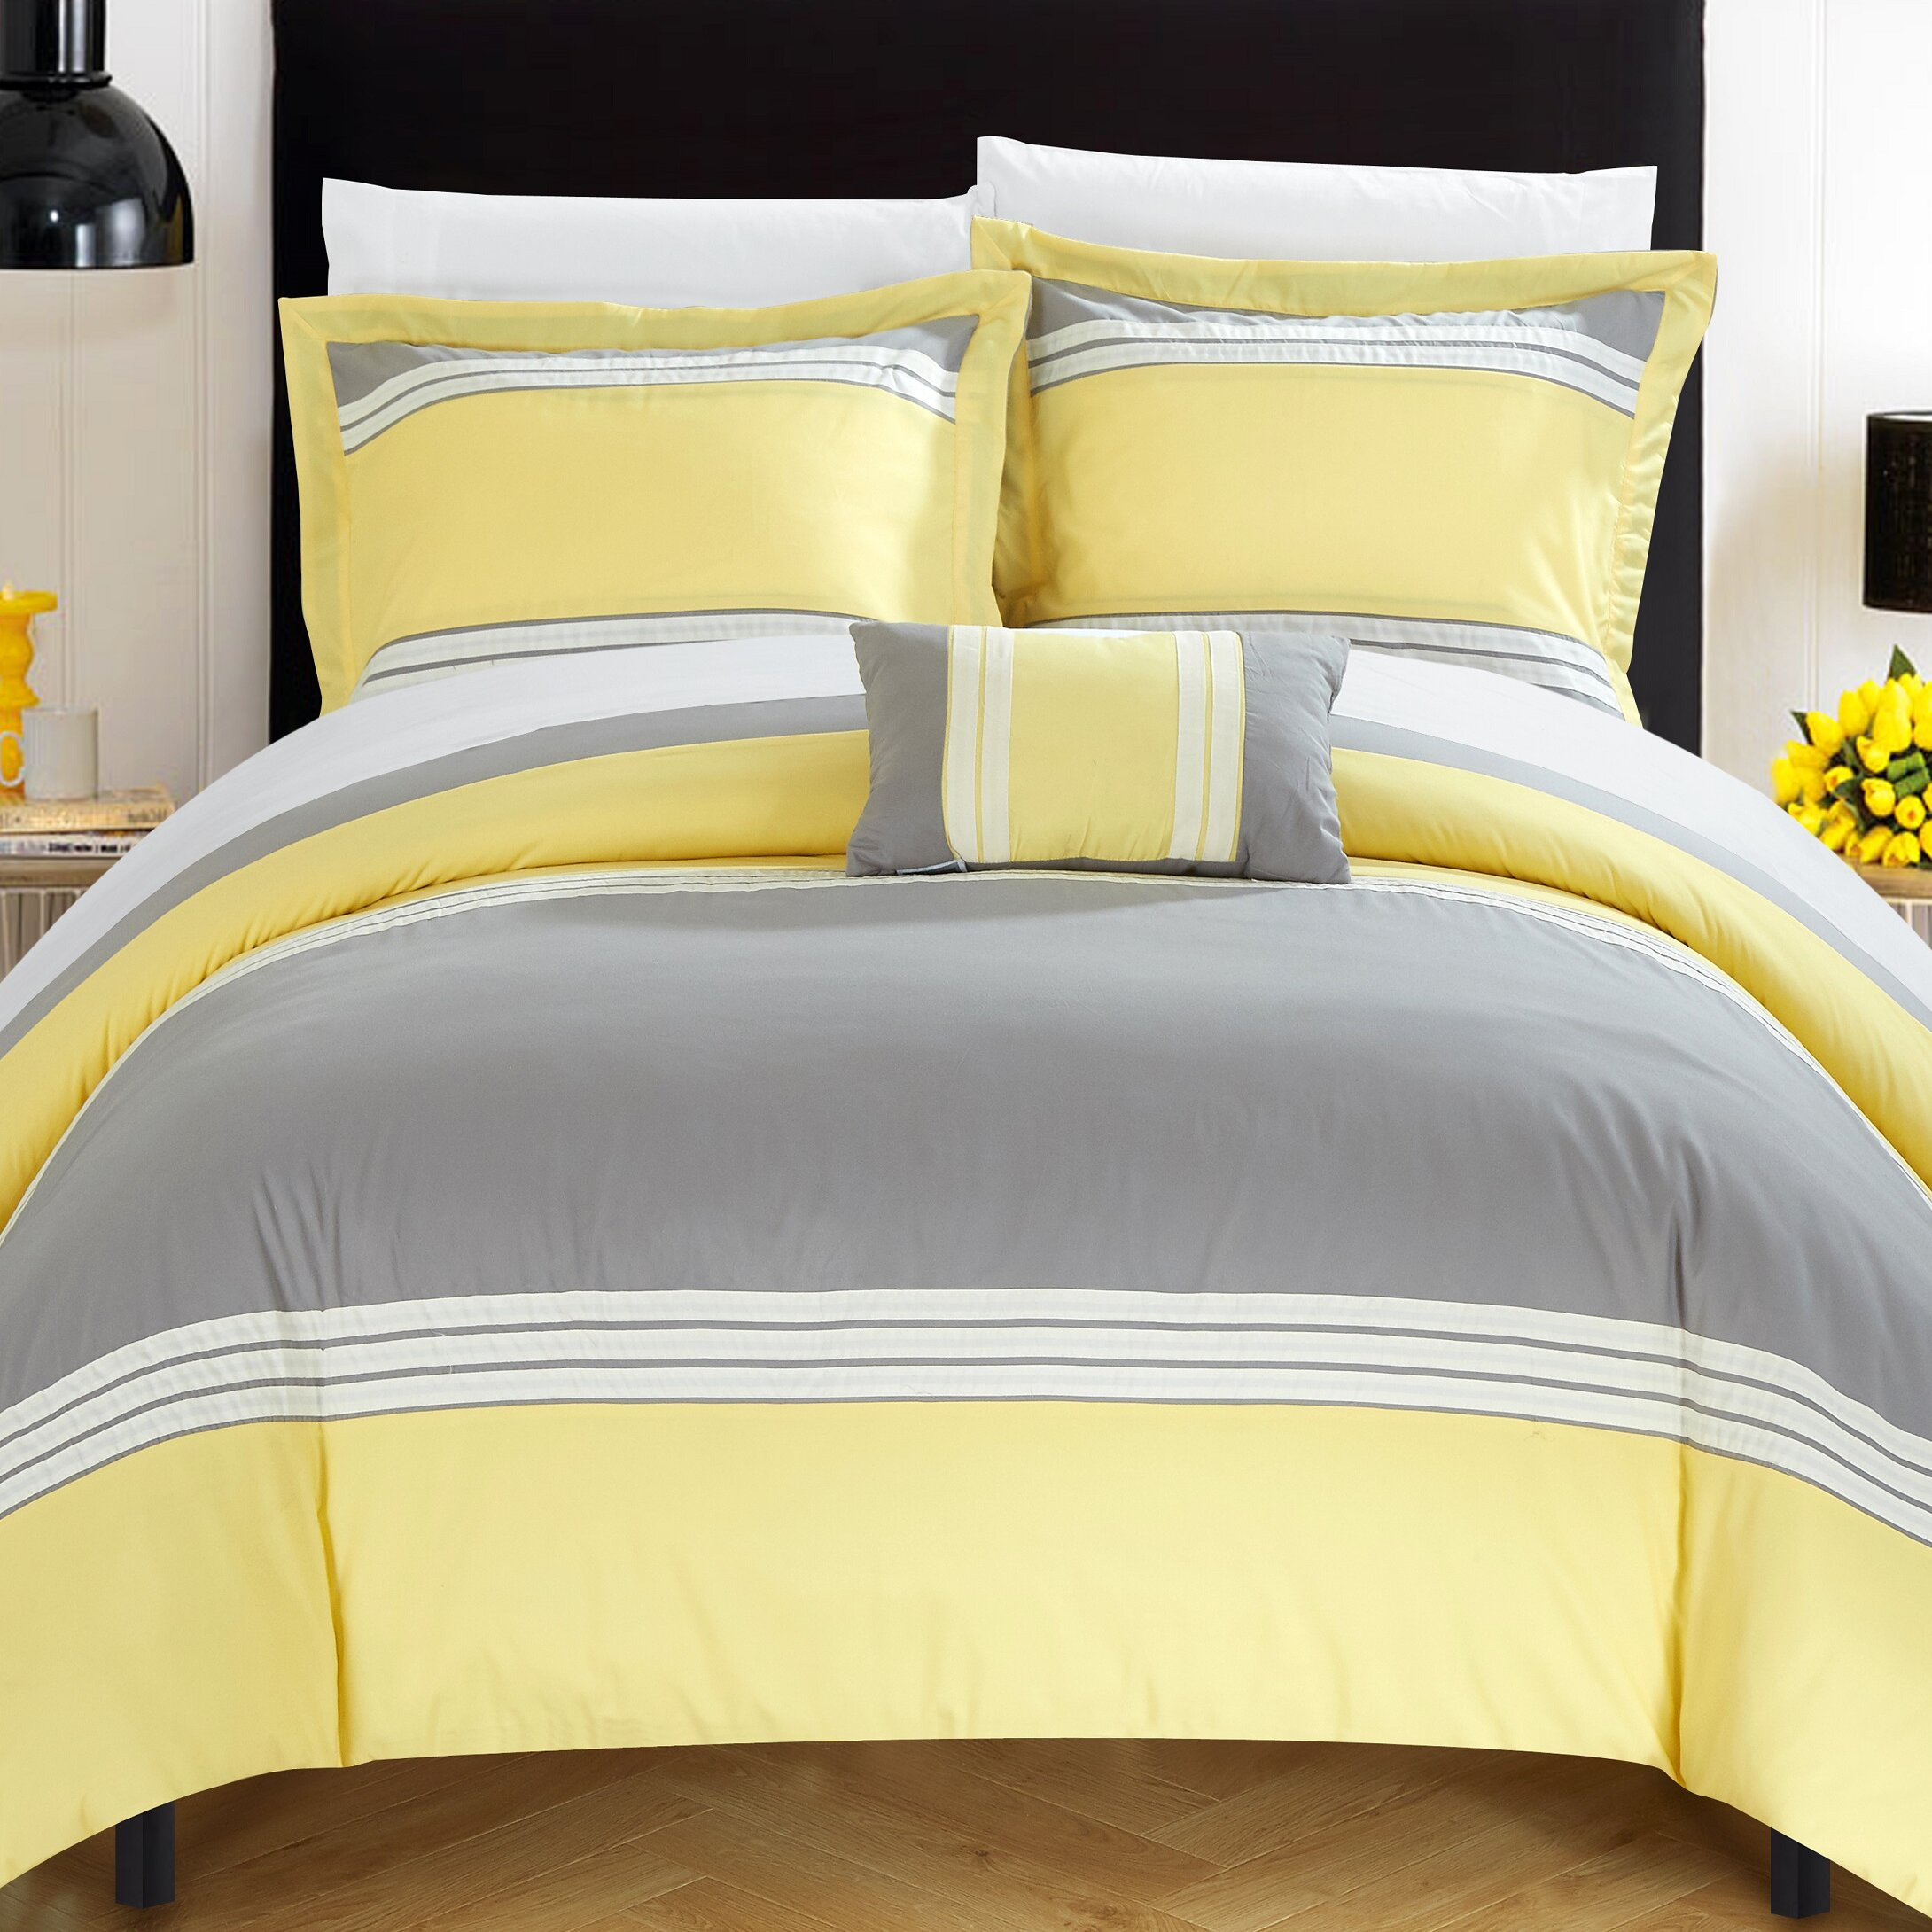 clearance for comforter striped your by bedeck and bexley sets ideas fabulous blue design bedding white pea collection hotel designs bedroom peacock at